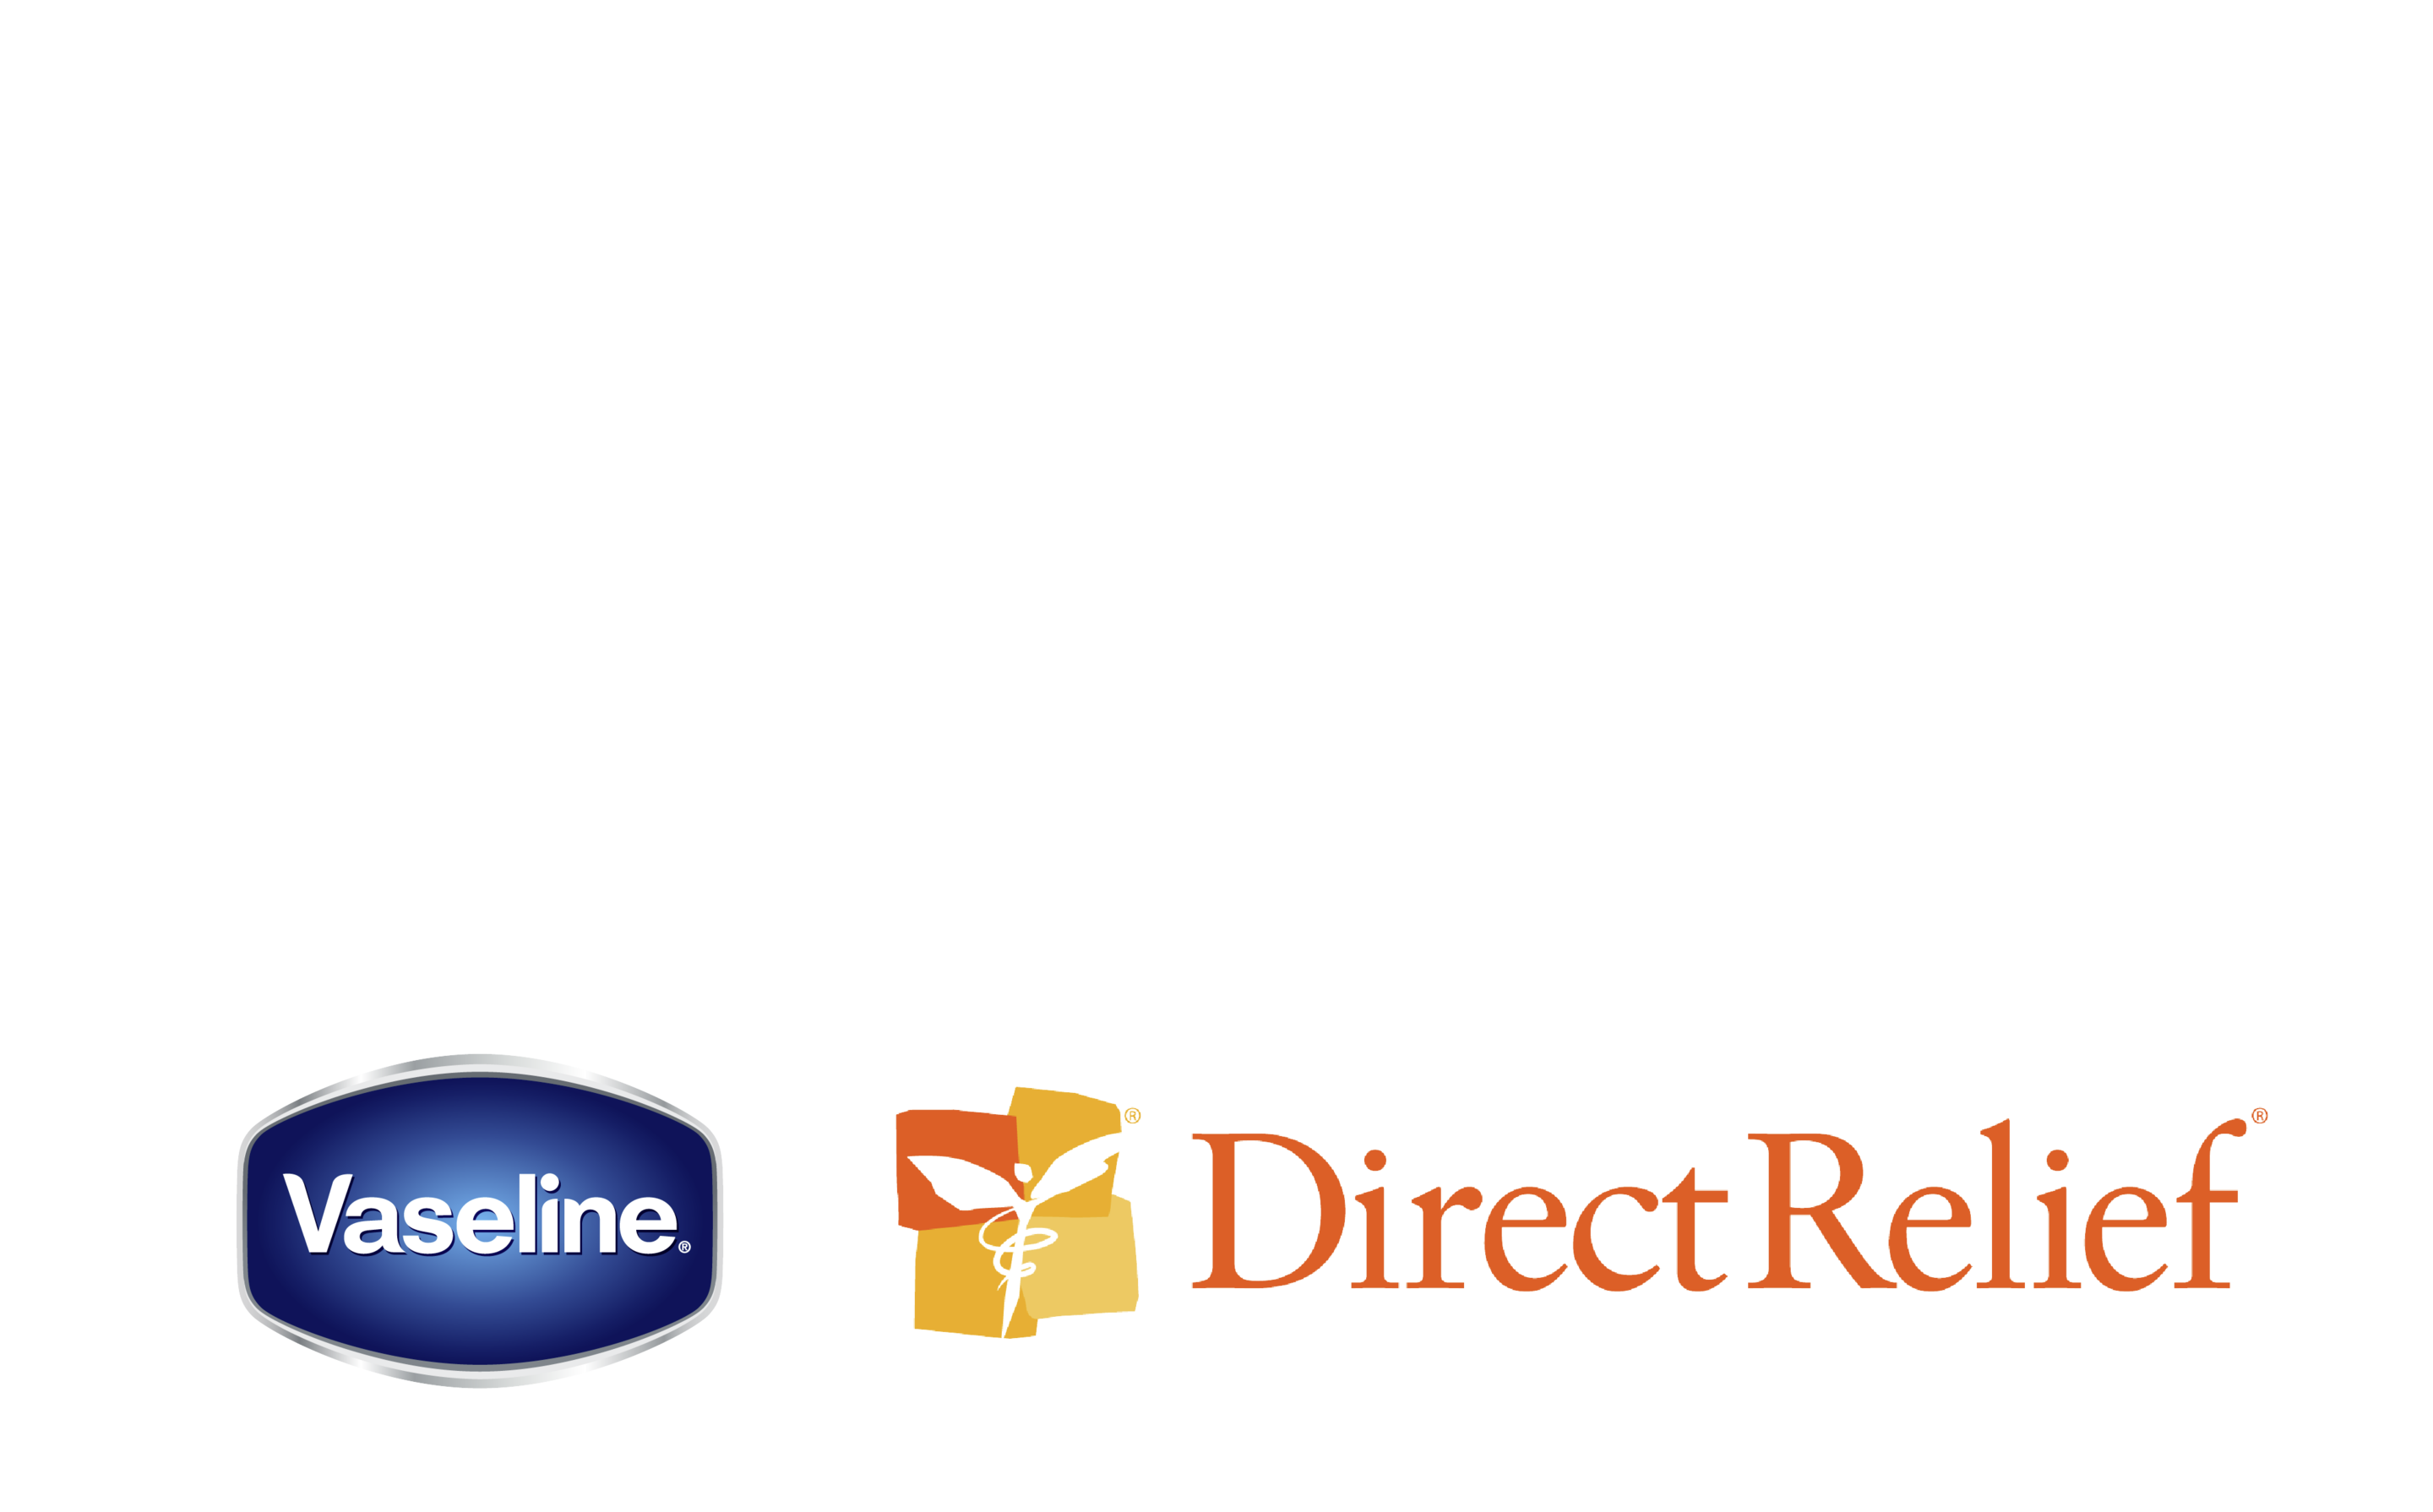 The Vaseline healing project logotype